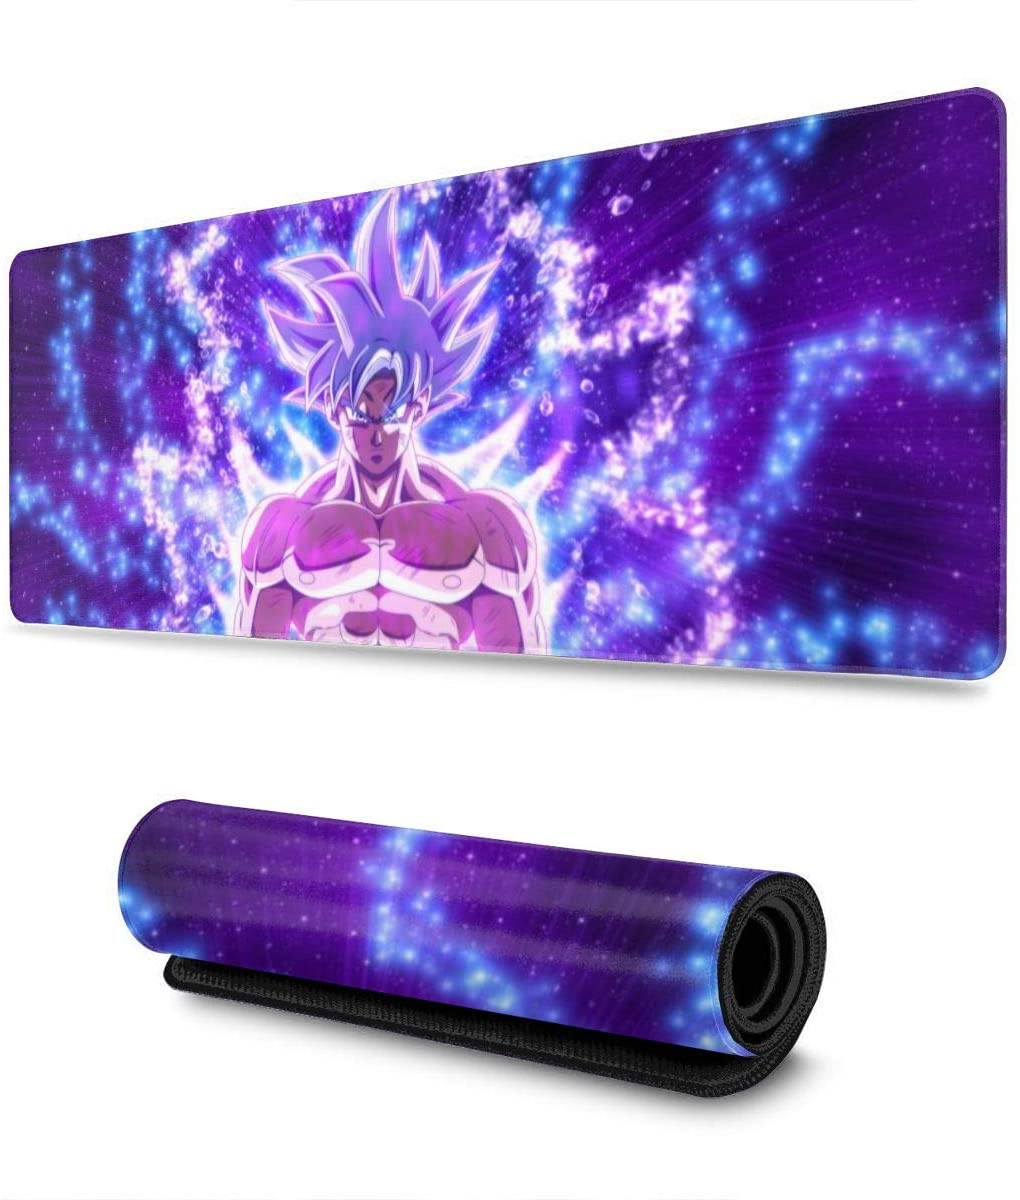 Extra Large Mouse Pad - Go-ku Desk Mousepad - dragon ball z gifts for him